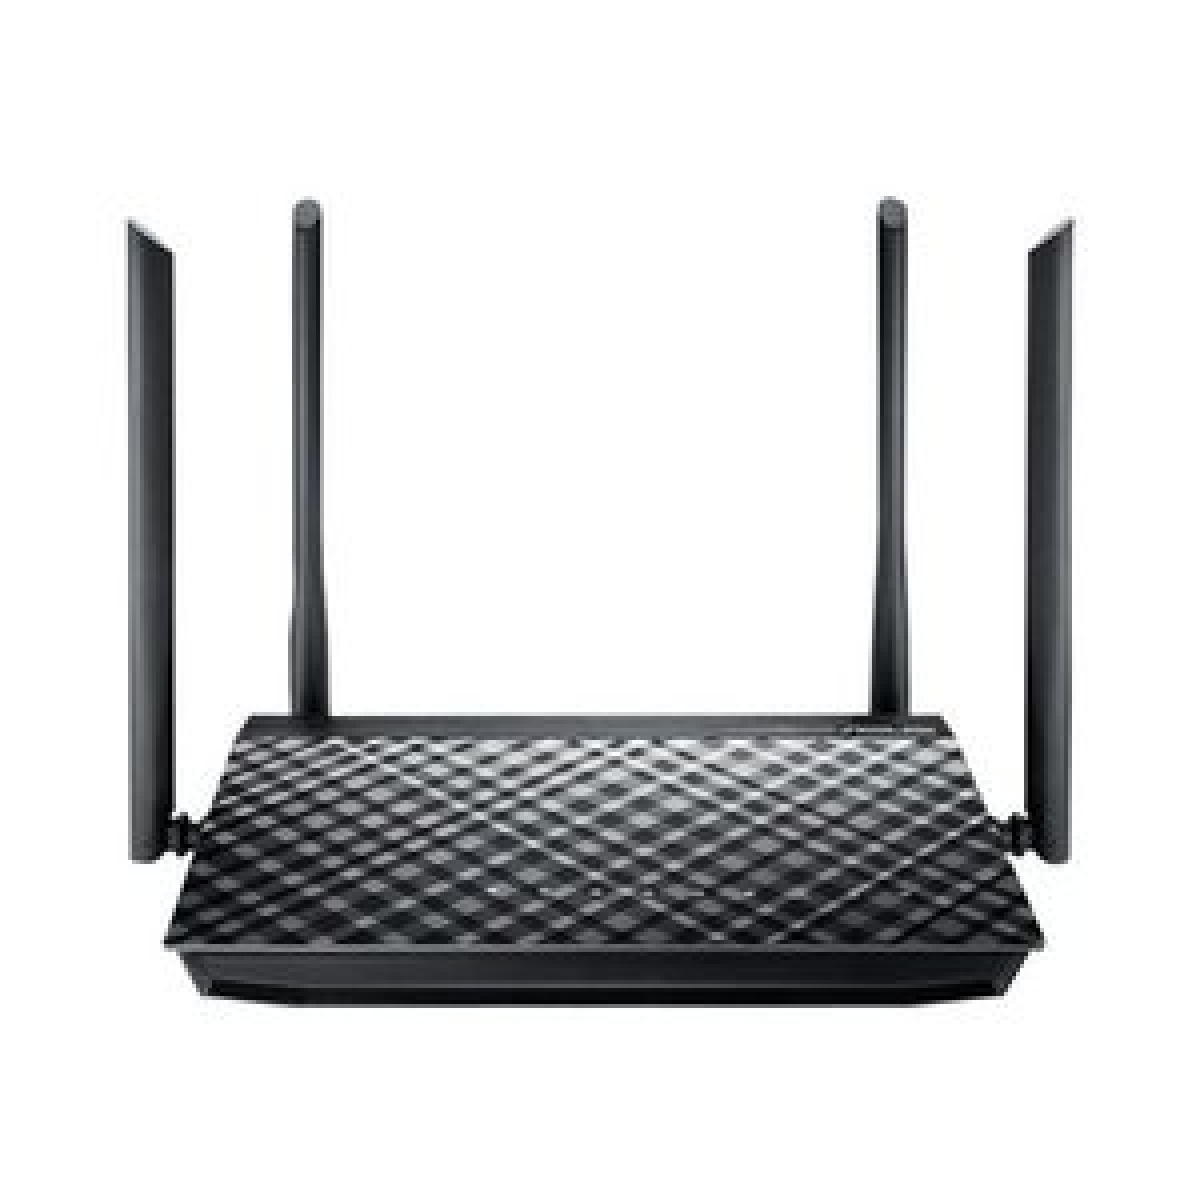 Router wireless RT-AC1200G+ Dual-Band, 1200MB Gigabit